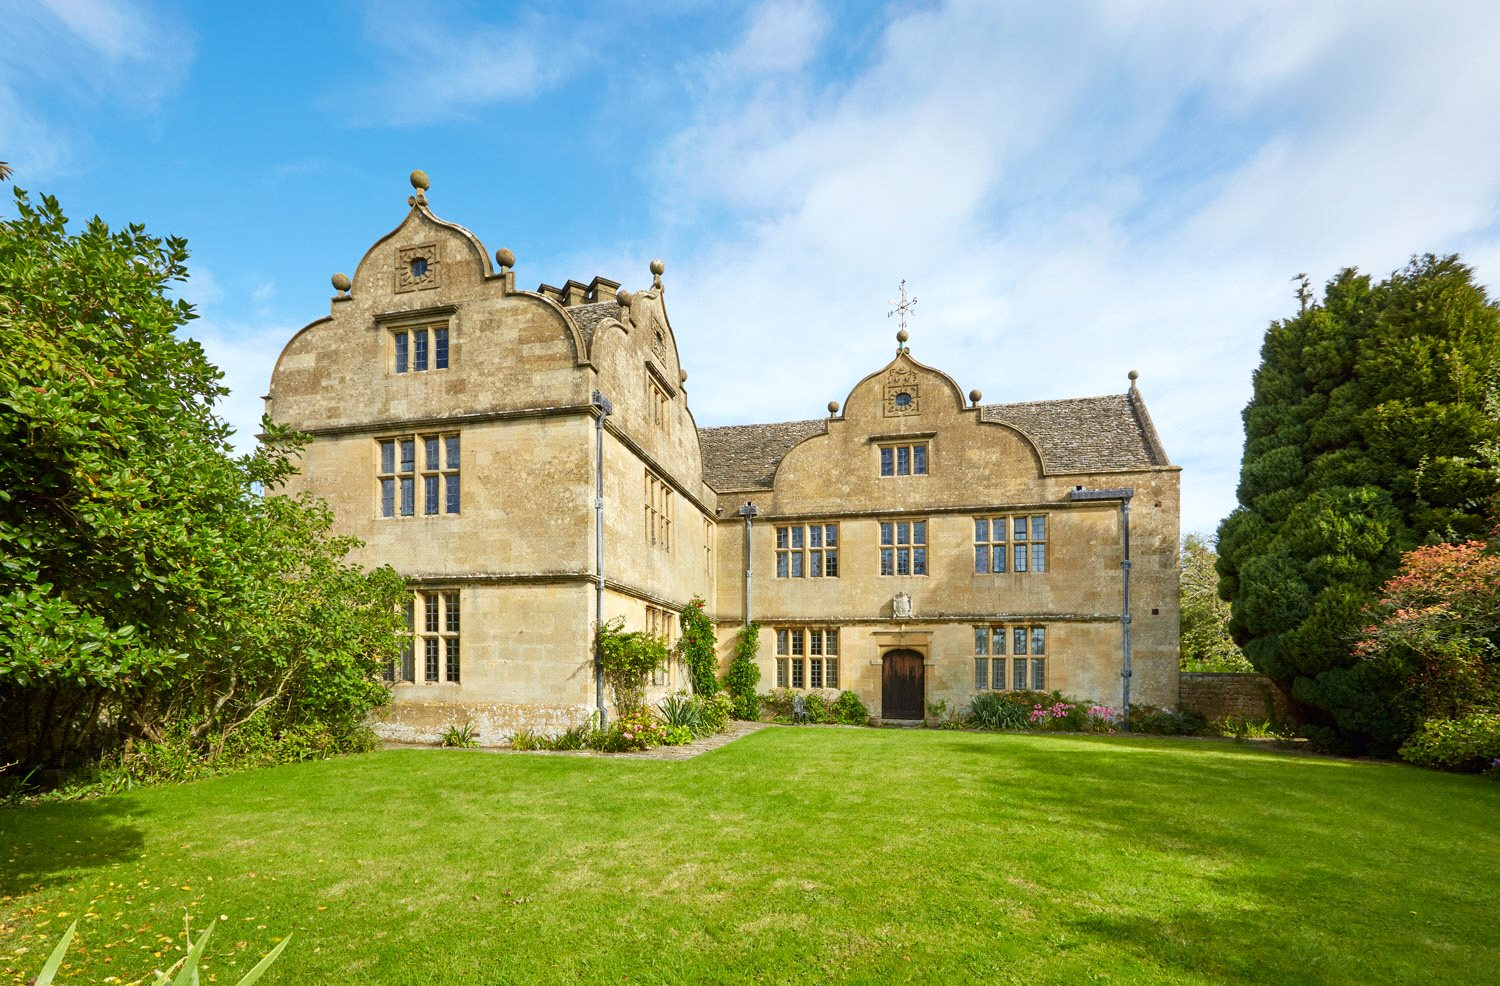 一戸建て のために 売買 アット Hidcote Boyce, Chipping Campden, Gloucestershire, GL55 Chipping Campden, イギリス